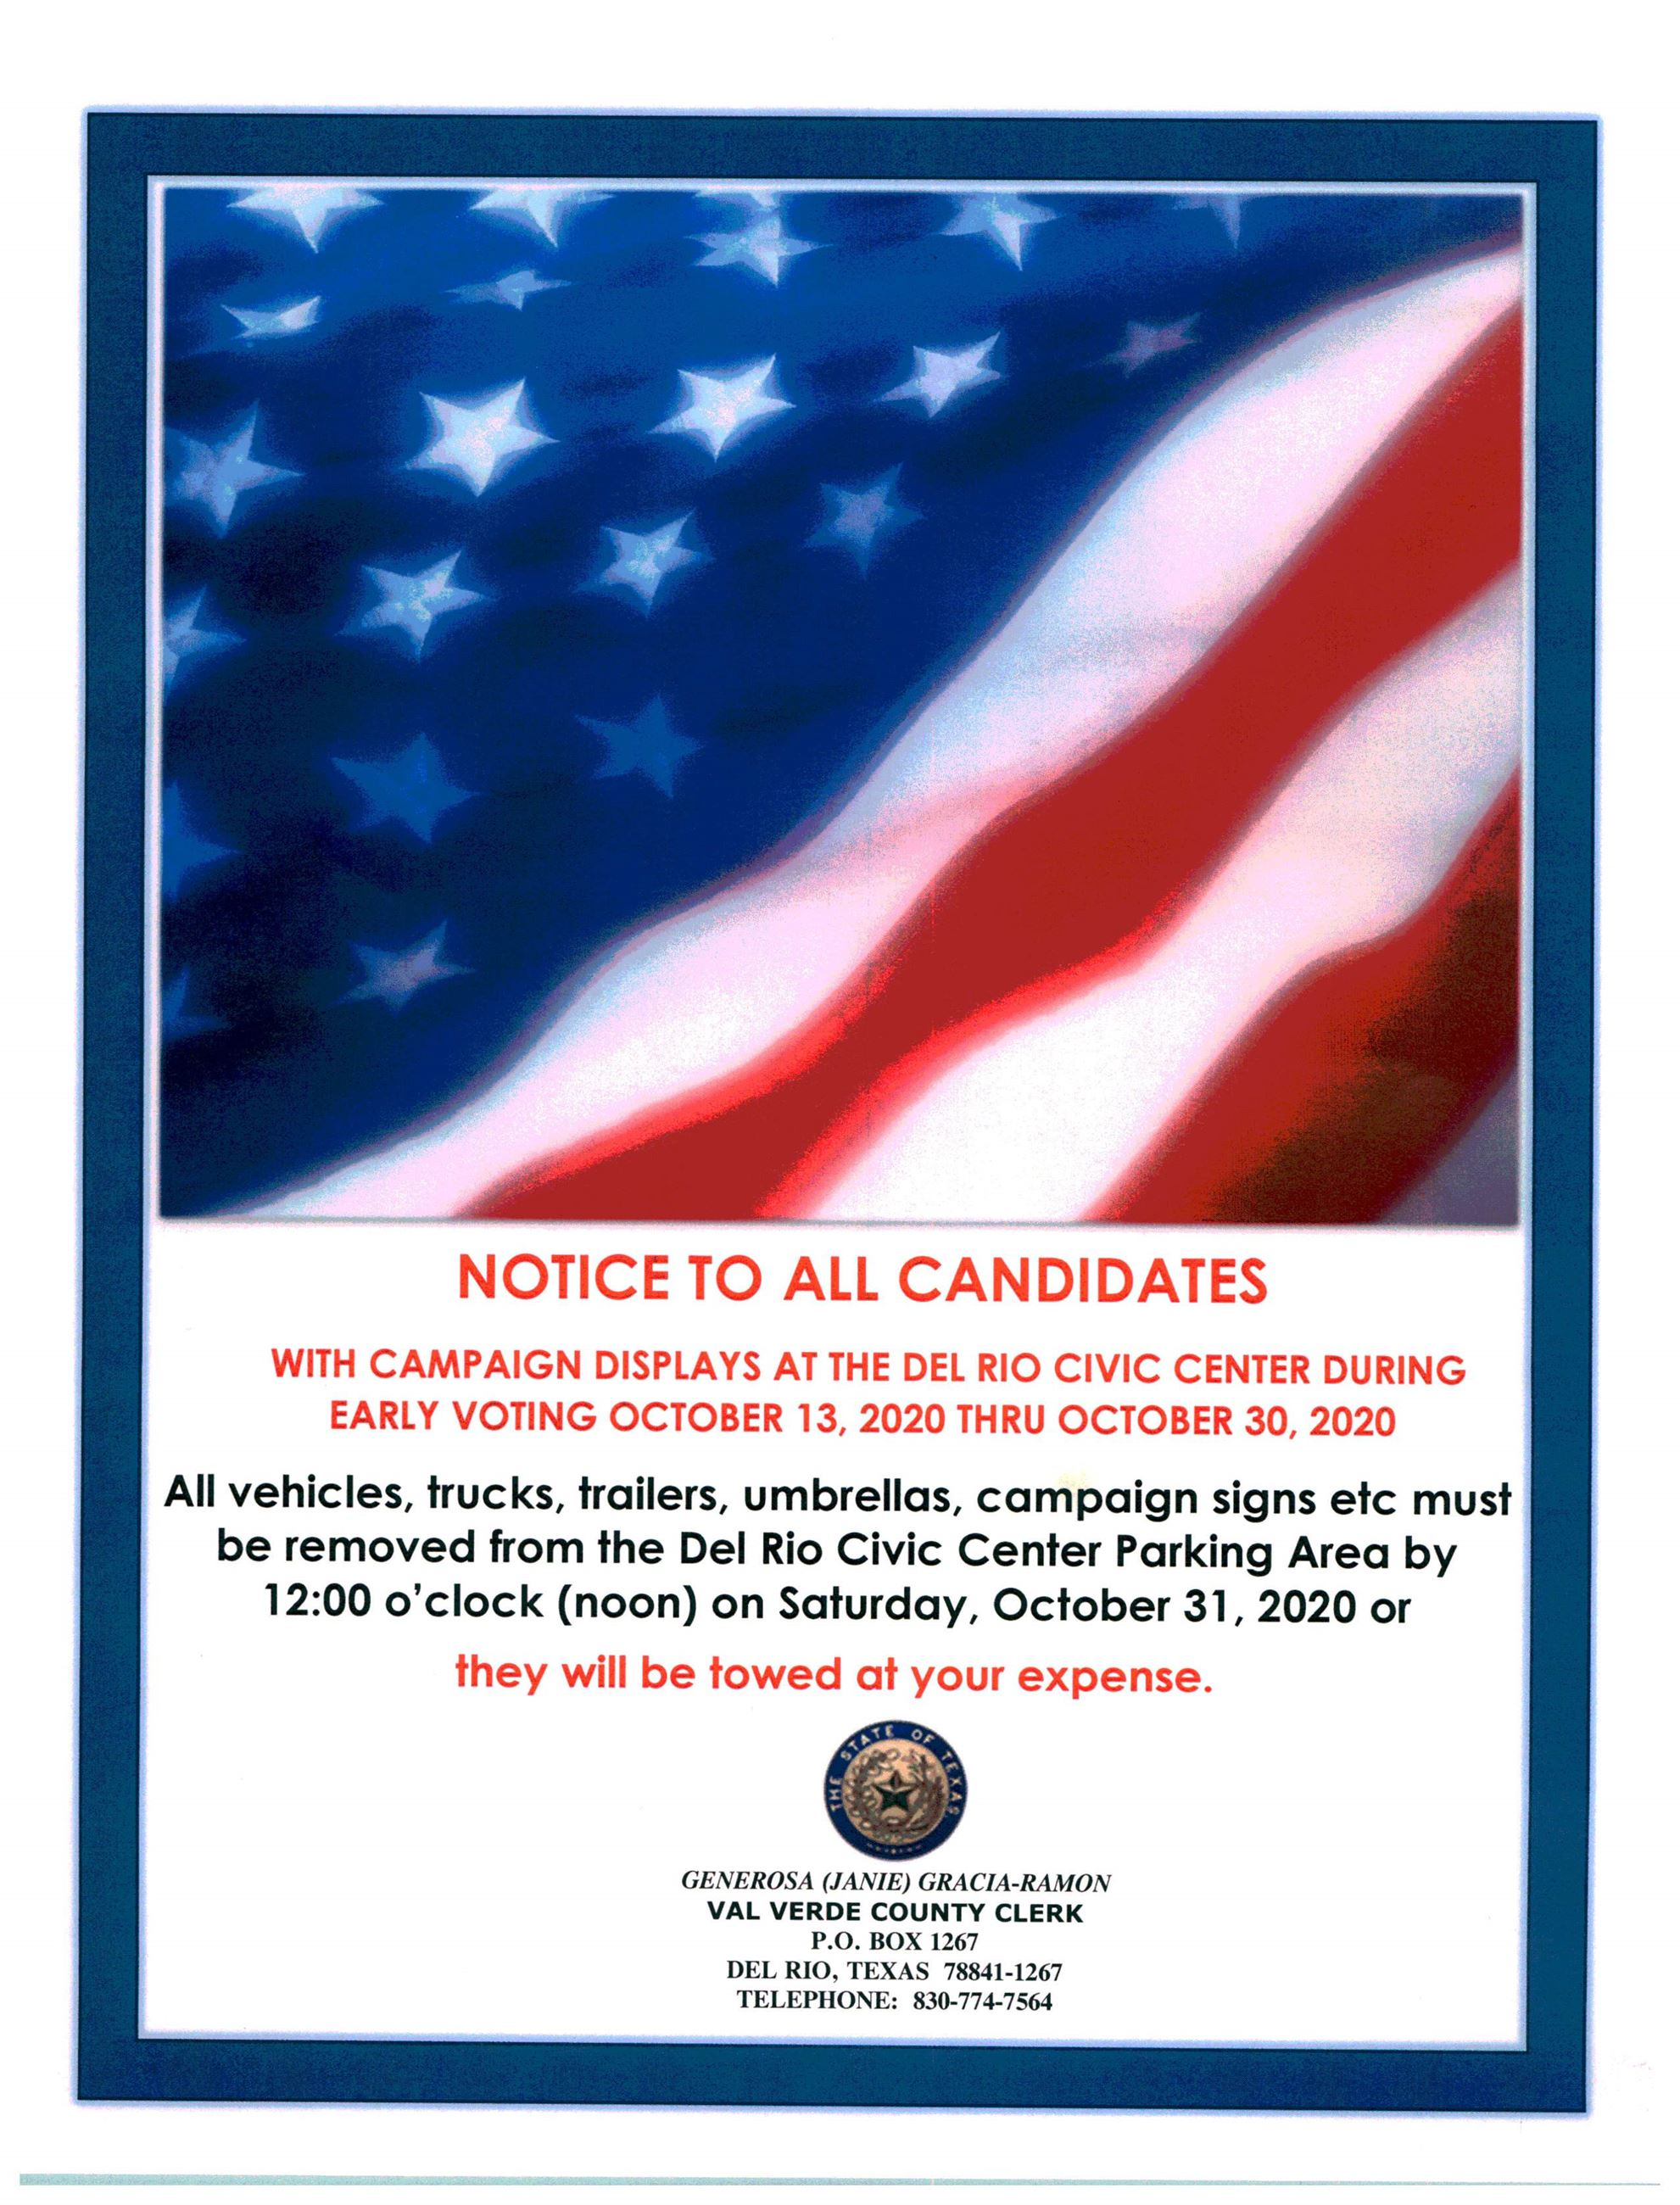 NOTICE TO ALL CANDIDATES